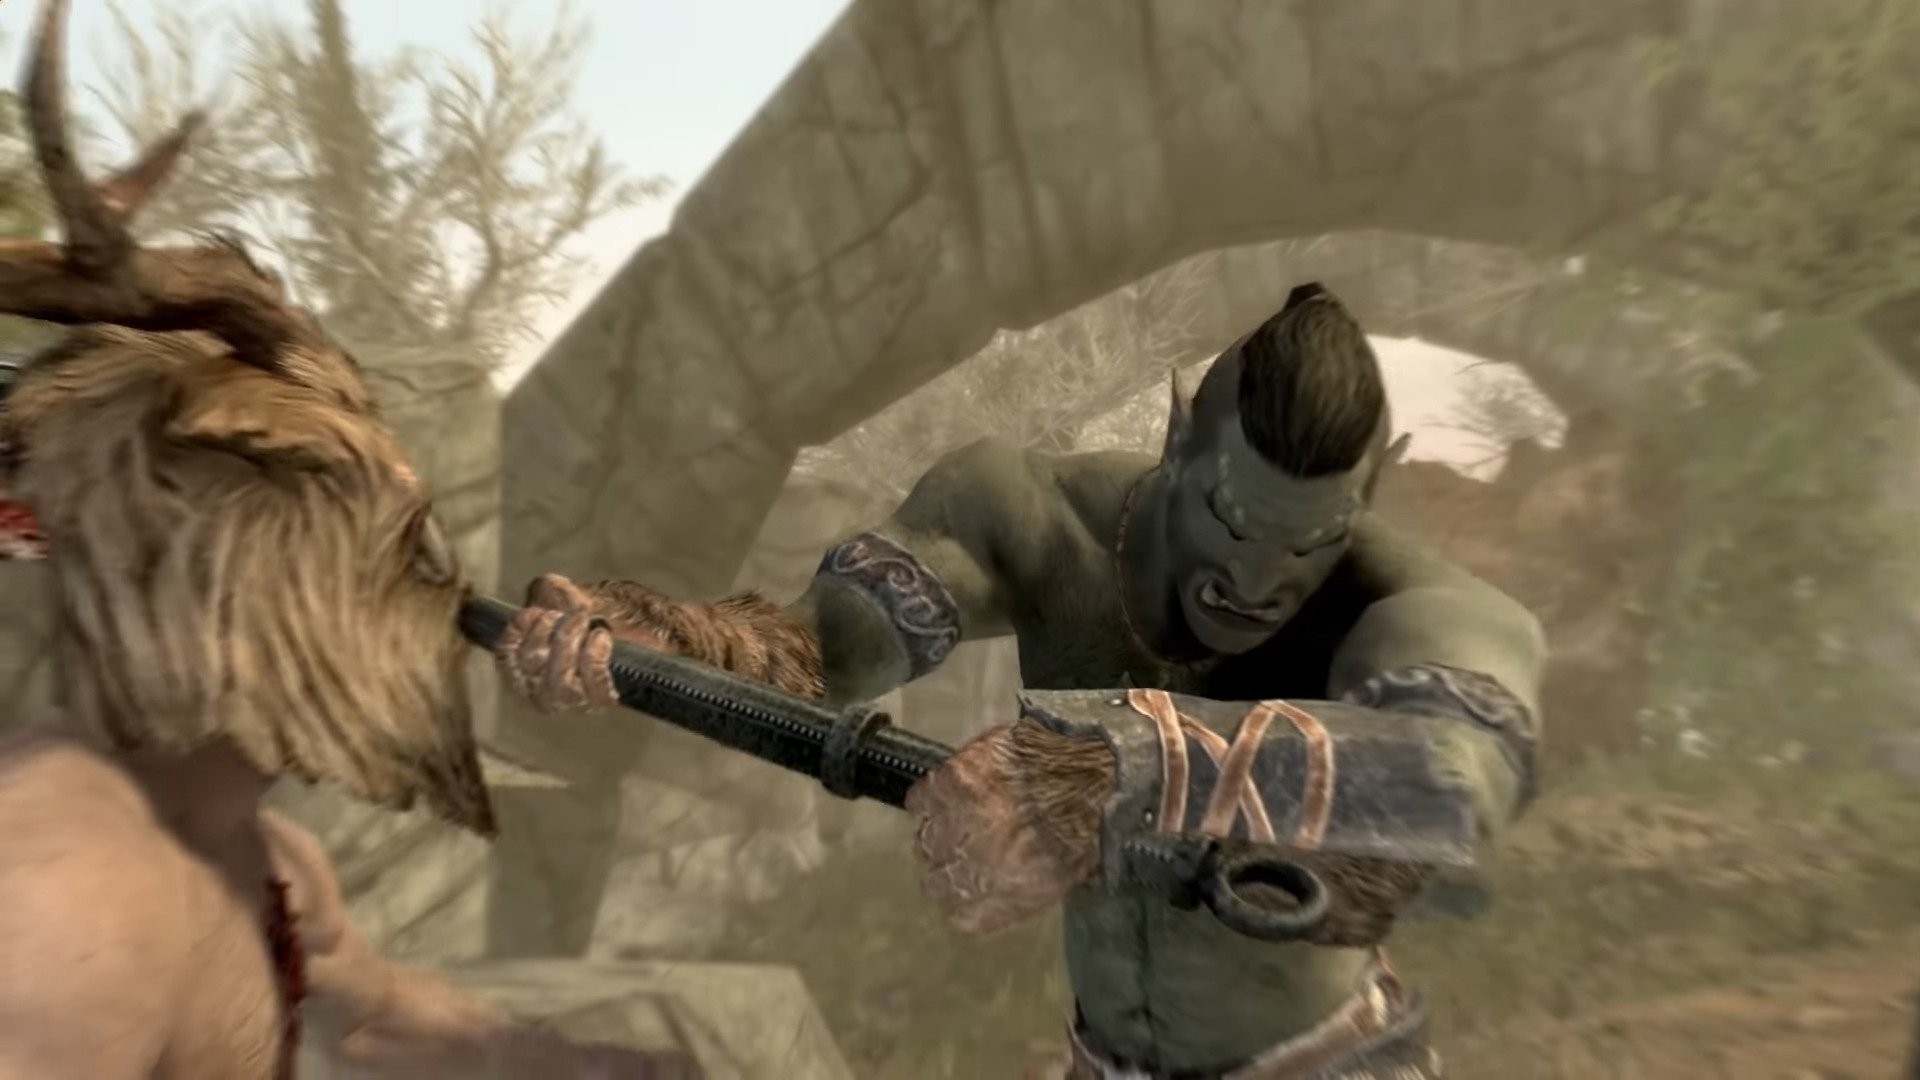 Skyrim Build Ideas: The Barbarian – Perks, Quests, and Roleplay Ideas For New Playstyle